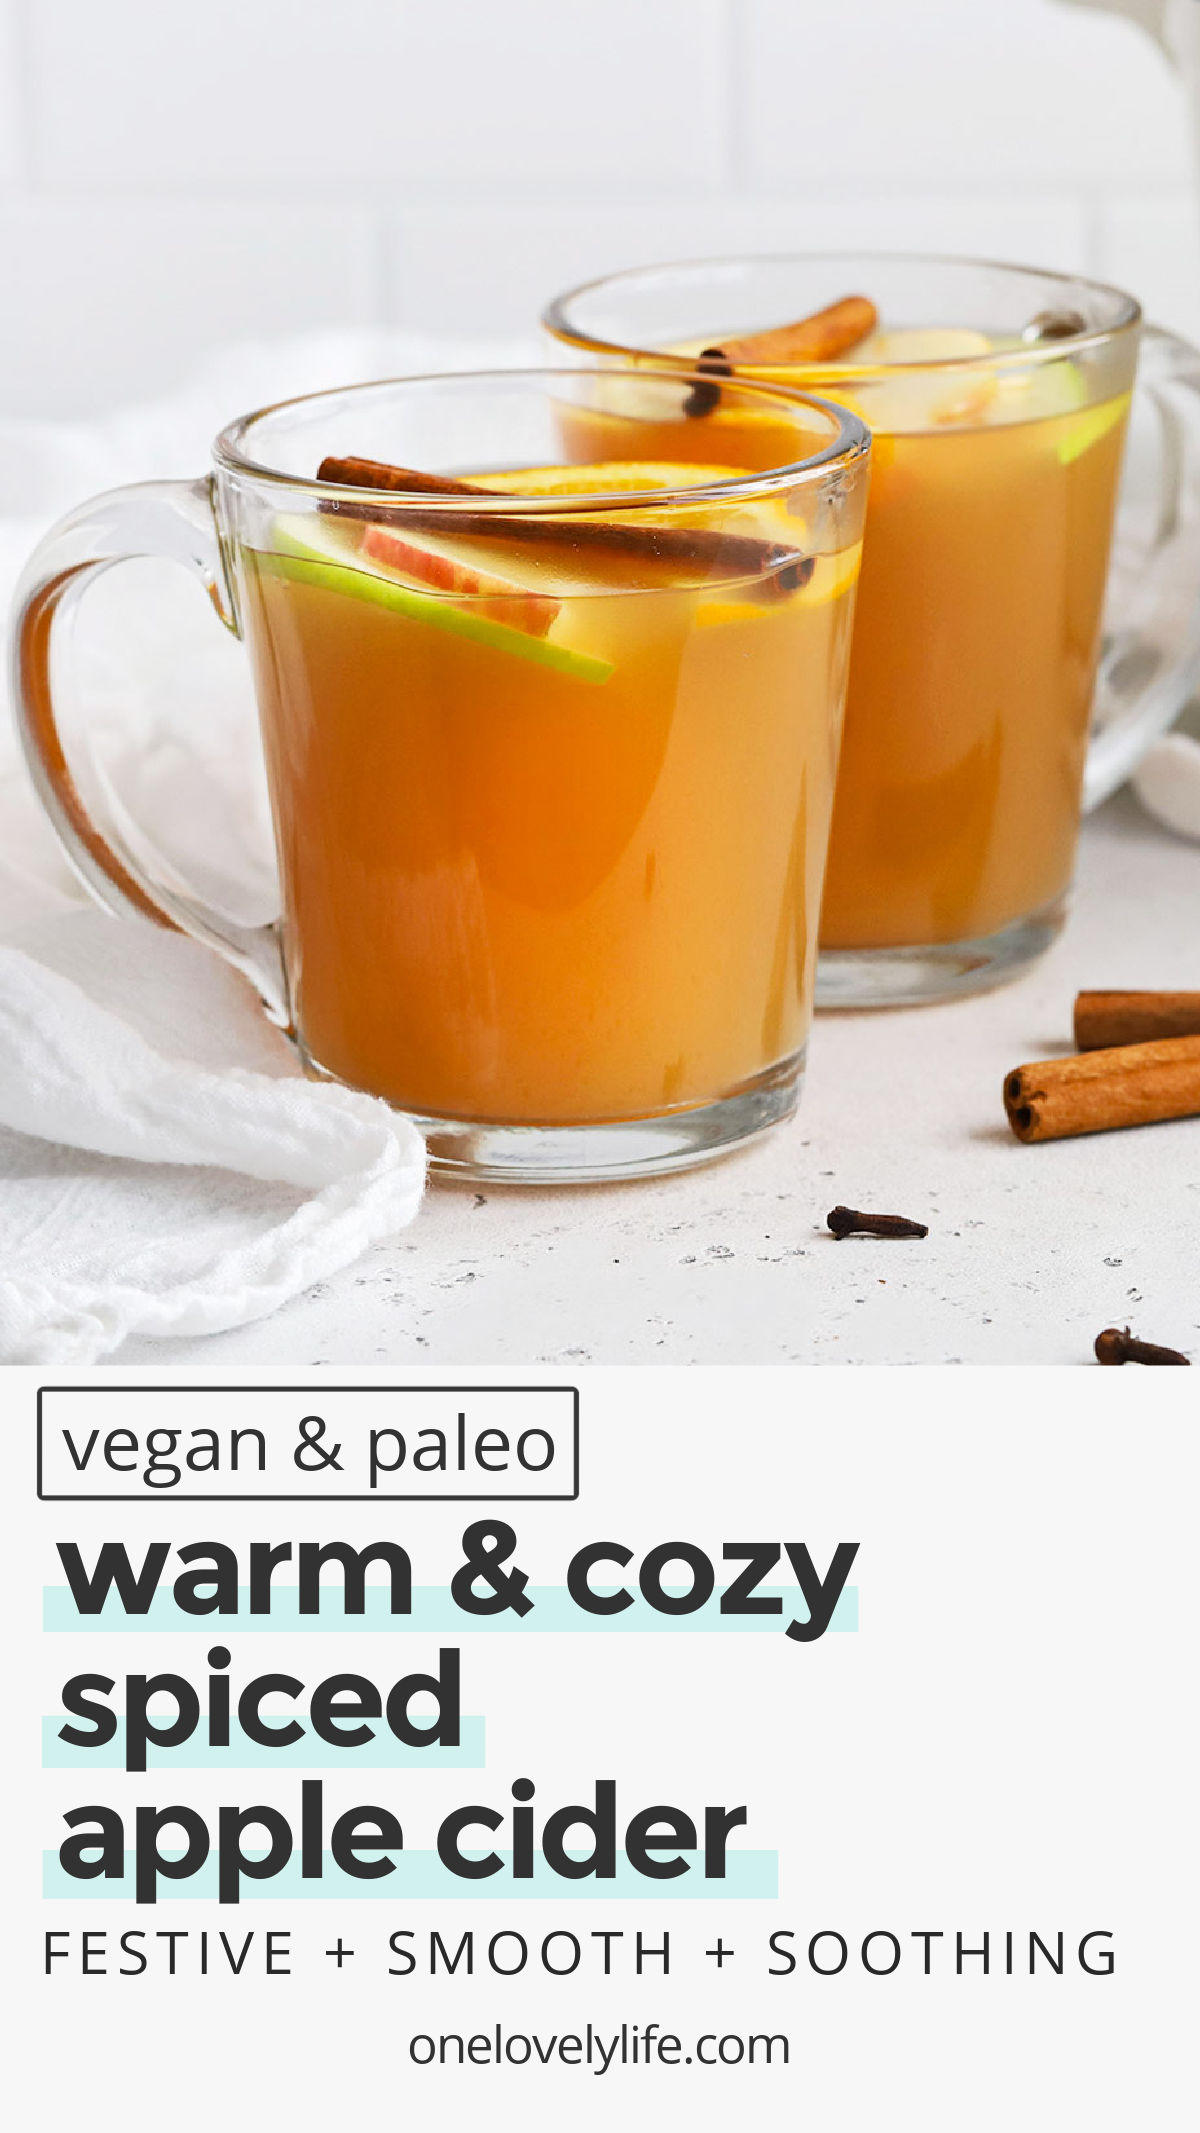 Cozy Spiced Cider - This easy spiced apple cider recipe smells and tastes incredible. The perfect blend of flavors and spices! (Naturally paleo & Vegan) // Spiced Cider Recipe // Naturally sweetened spiced cider // healthy fall drink // warm drinks // holiday drinks // non-alcoholic drinks // Christmas cider drink // hot drinks #cider #spicedcider #paleo #vegan #glutenfree #holidaydrink #warmdrink